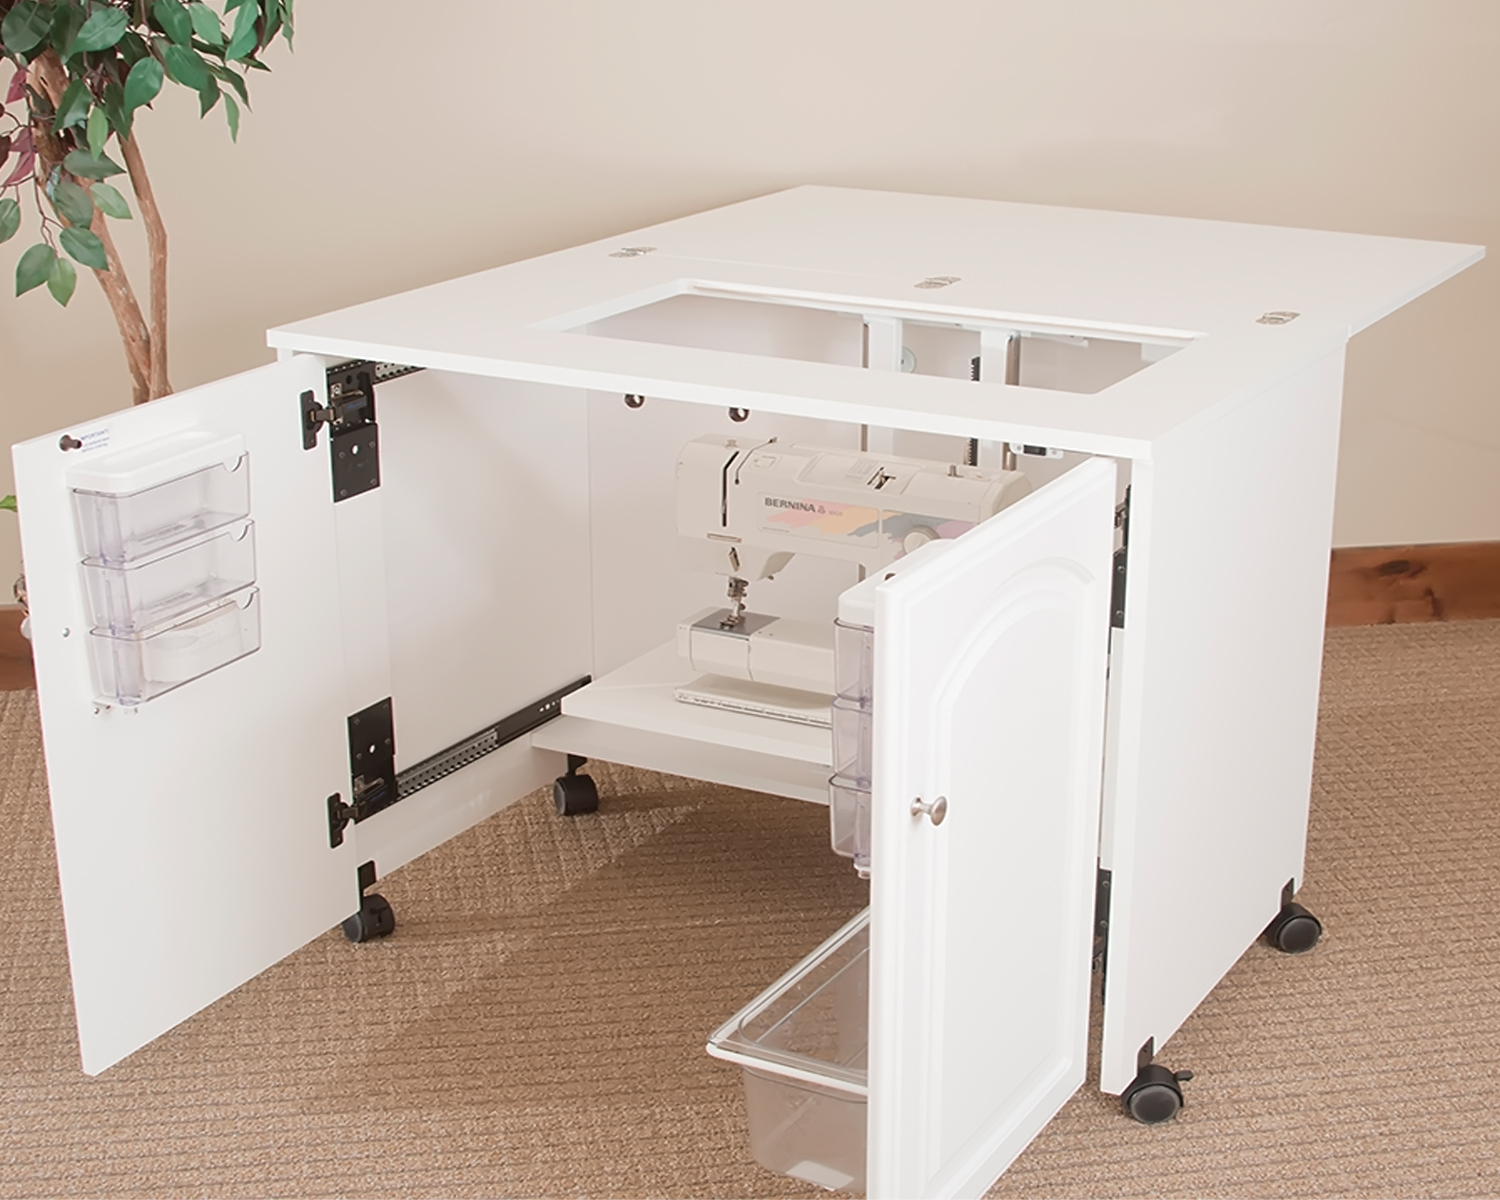 Model 7500 Space Saver Sewing Cabinet Pocket Doors Extra